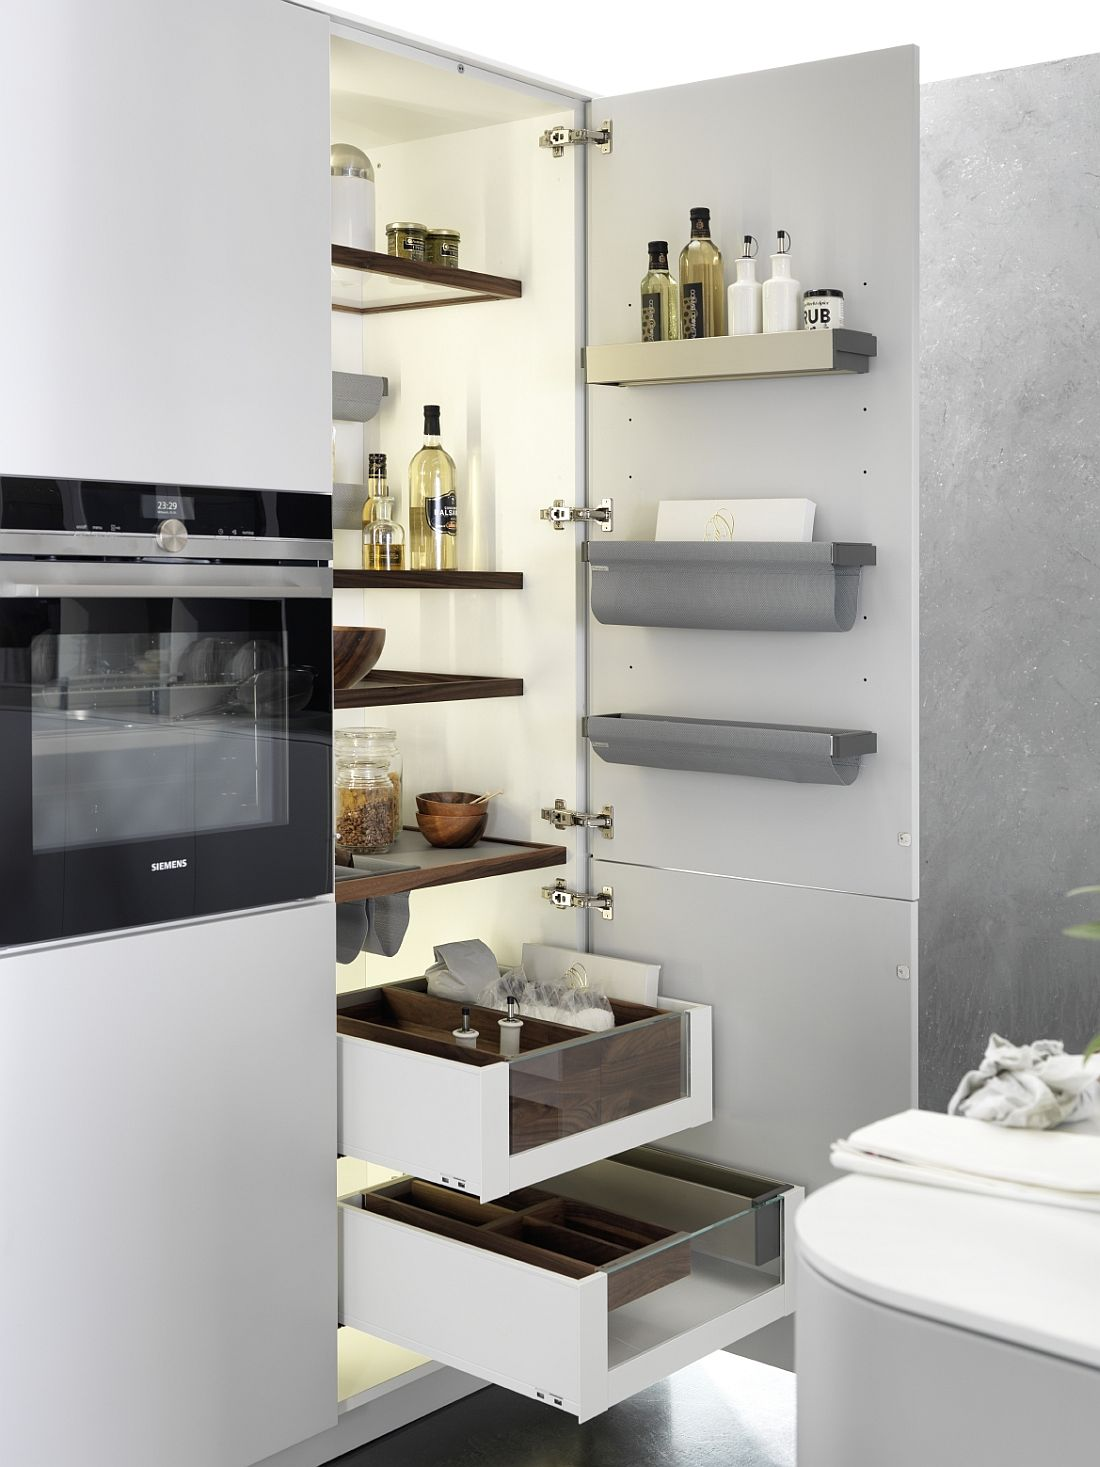 Amazing kitchen storage solutions with space-savvy design